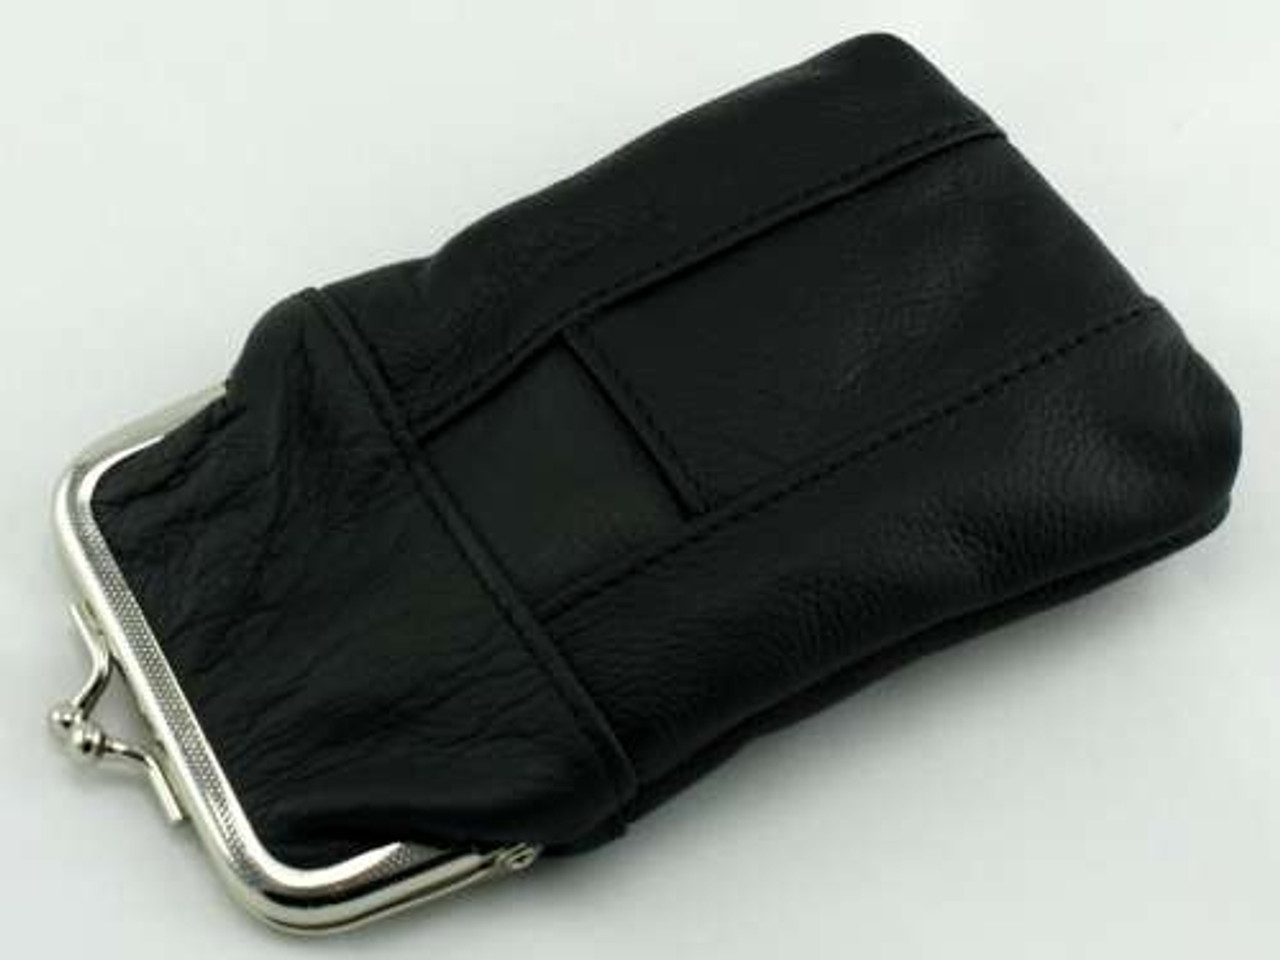 Black Leather 120 Cigarette Pack Holder